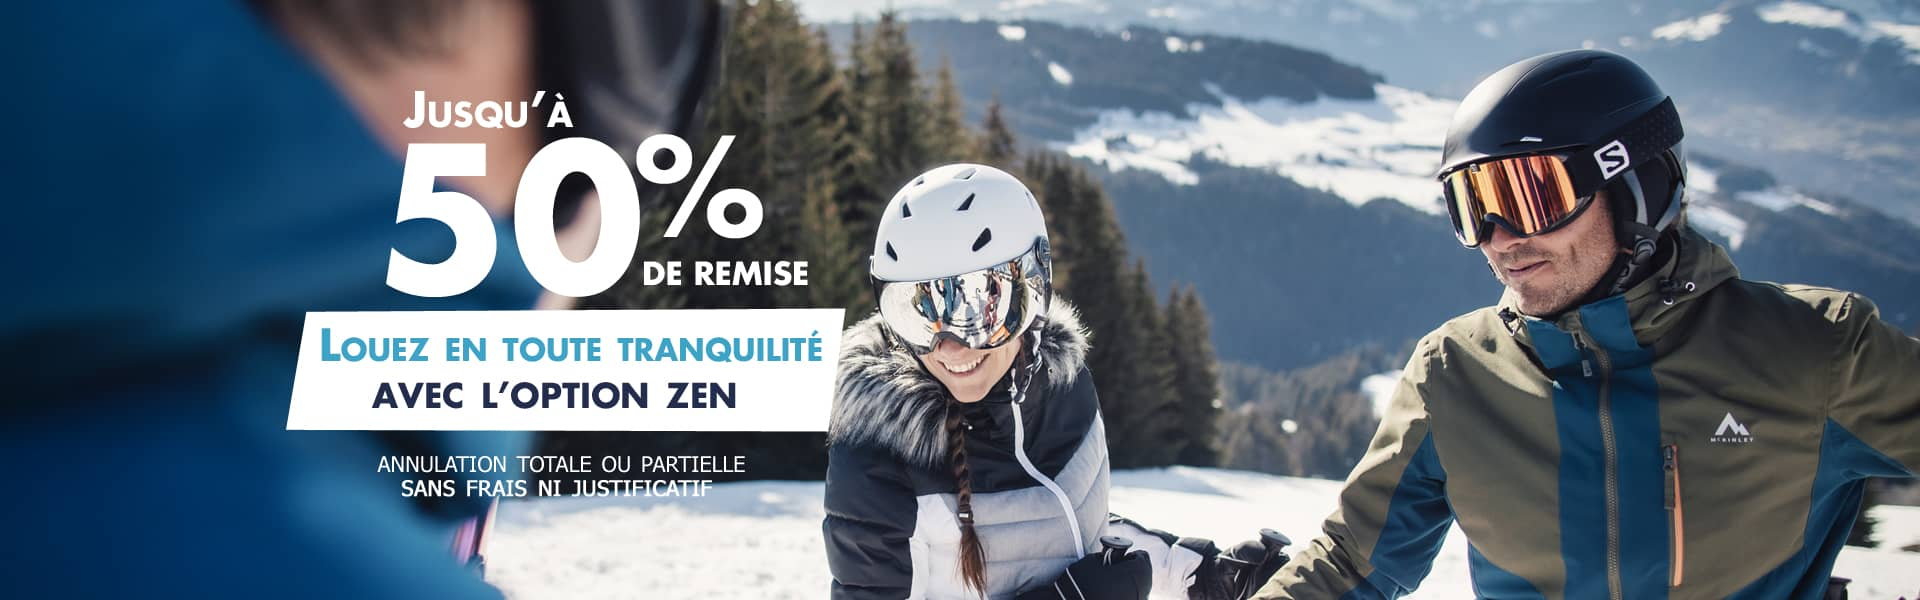 Location ski Intersport La Joue du Loup